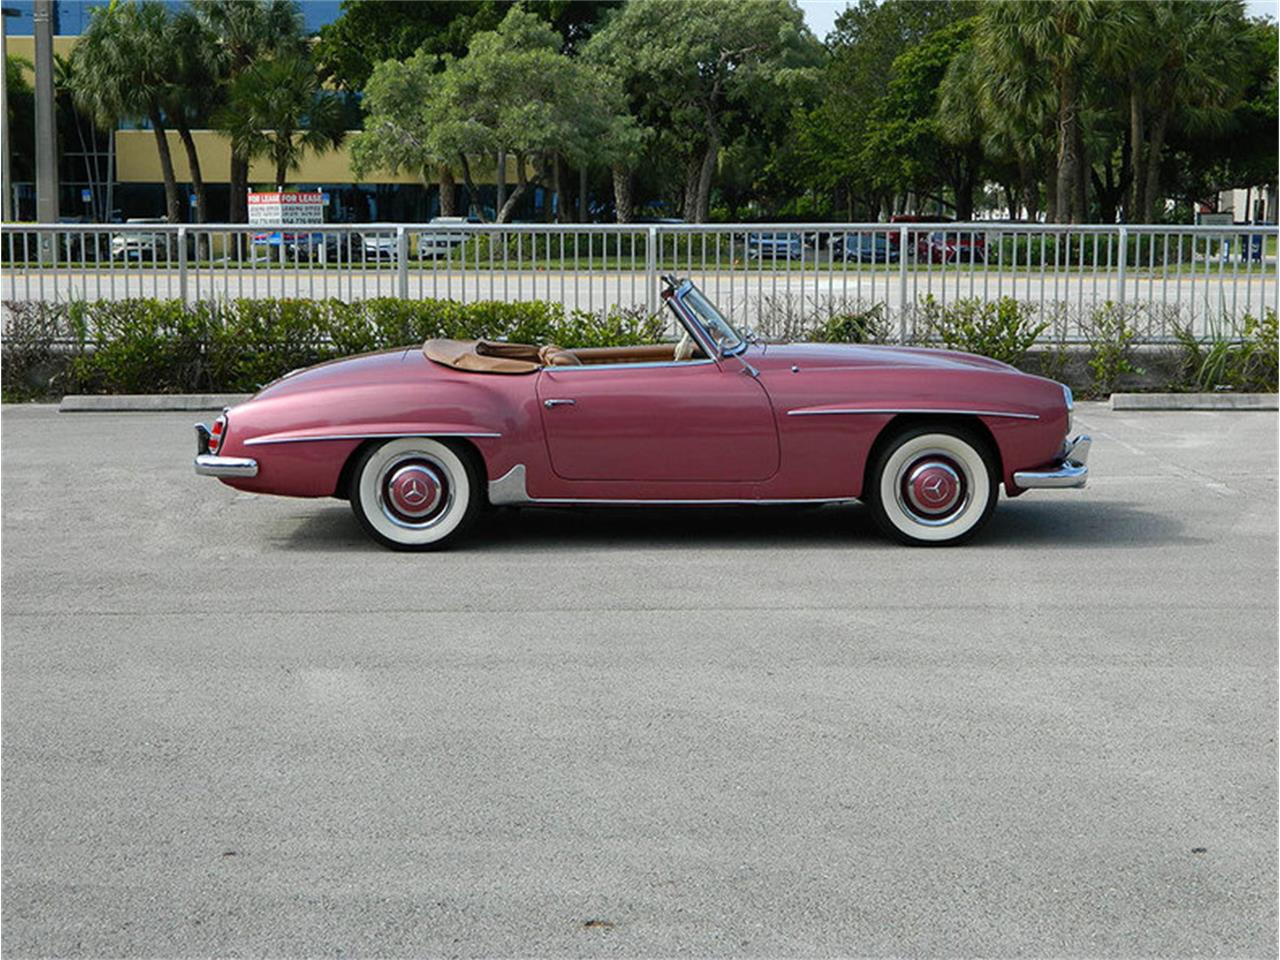 Large Picture of Classic 1957 Mercedes-Benz 190SL located in Fort Lauderdale Florida - $225,900.00 - M8SB